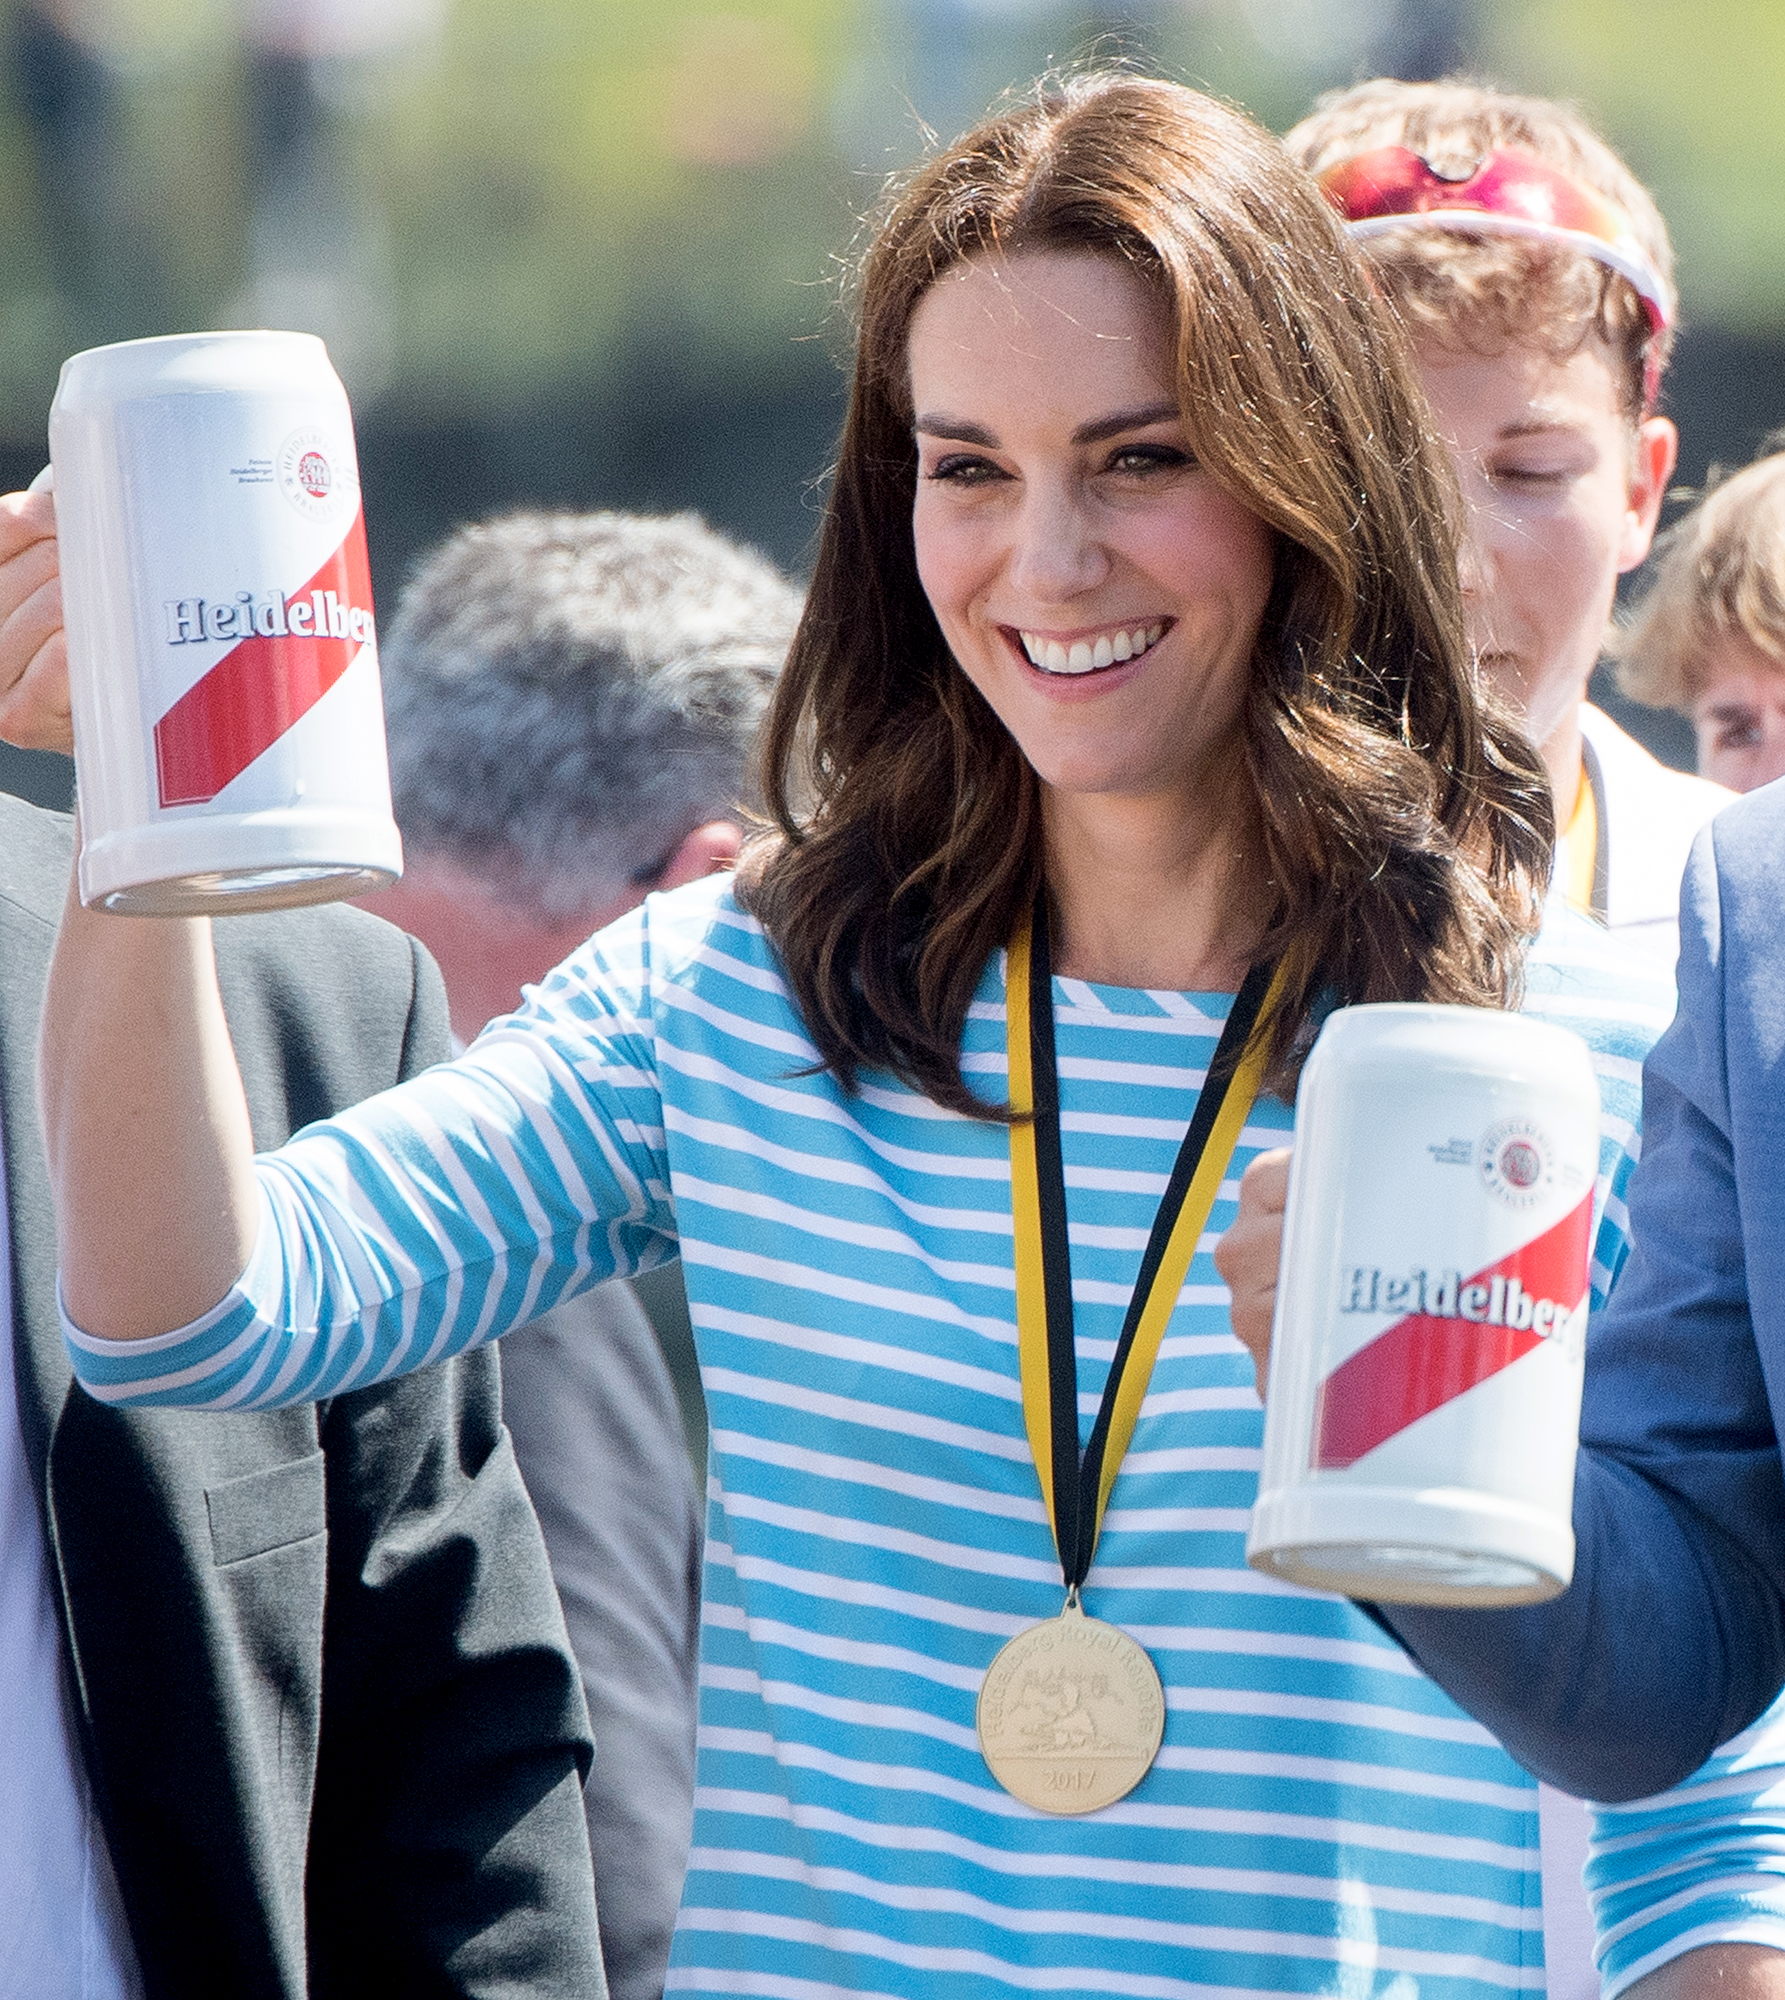 Raising-a-Glass-duchess-kate - The royal celebrated her victory by raising a glass full of beer in Heidelberg, Germany, after participating in a rowing race between the twinned town of Cambridge and Heidelberg during an official visit to Poland and Germany in July 2017.